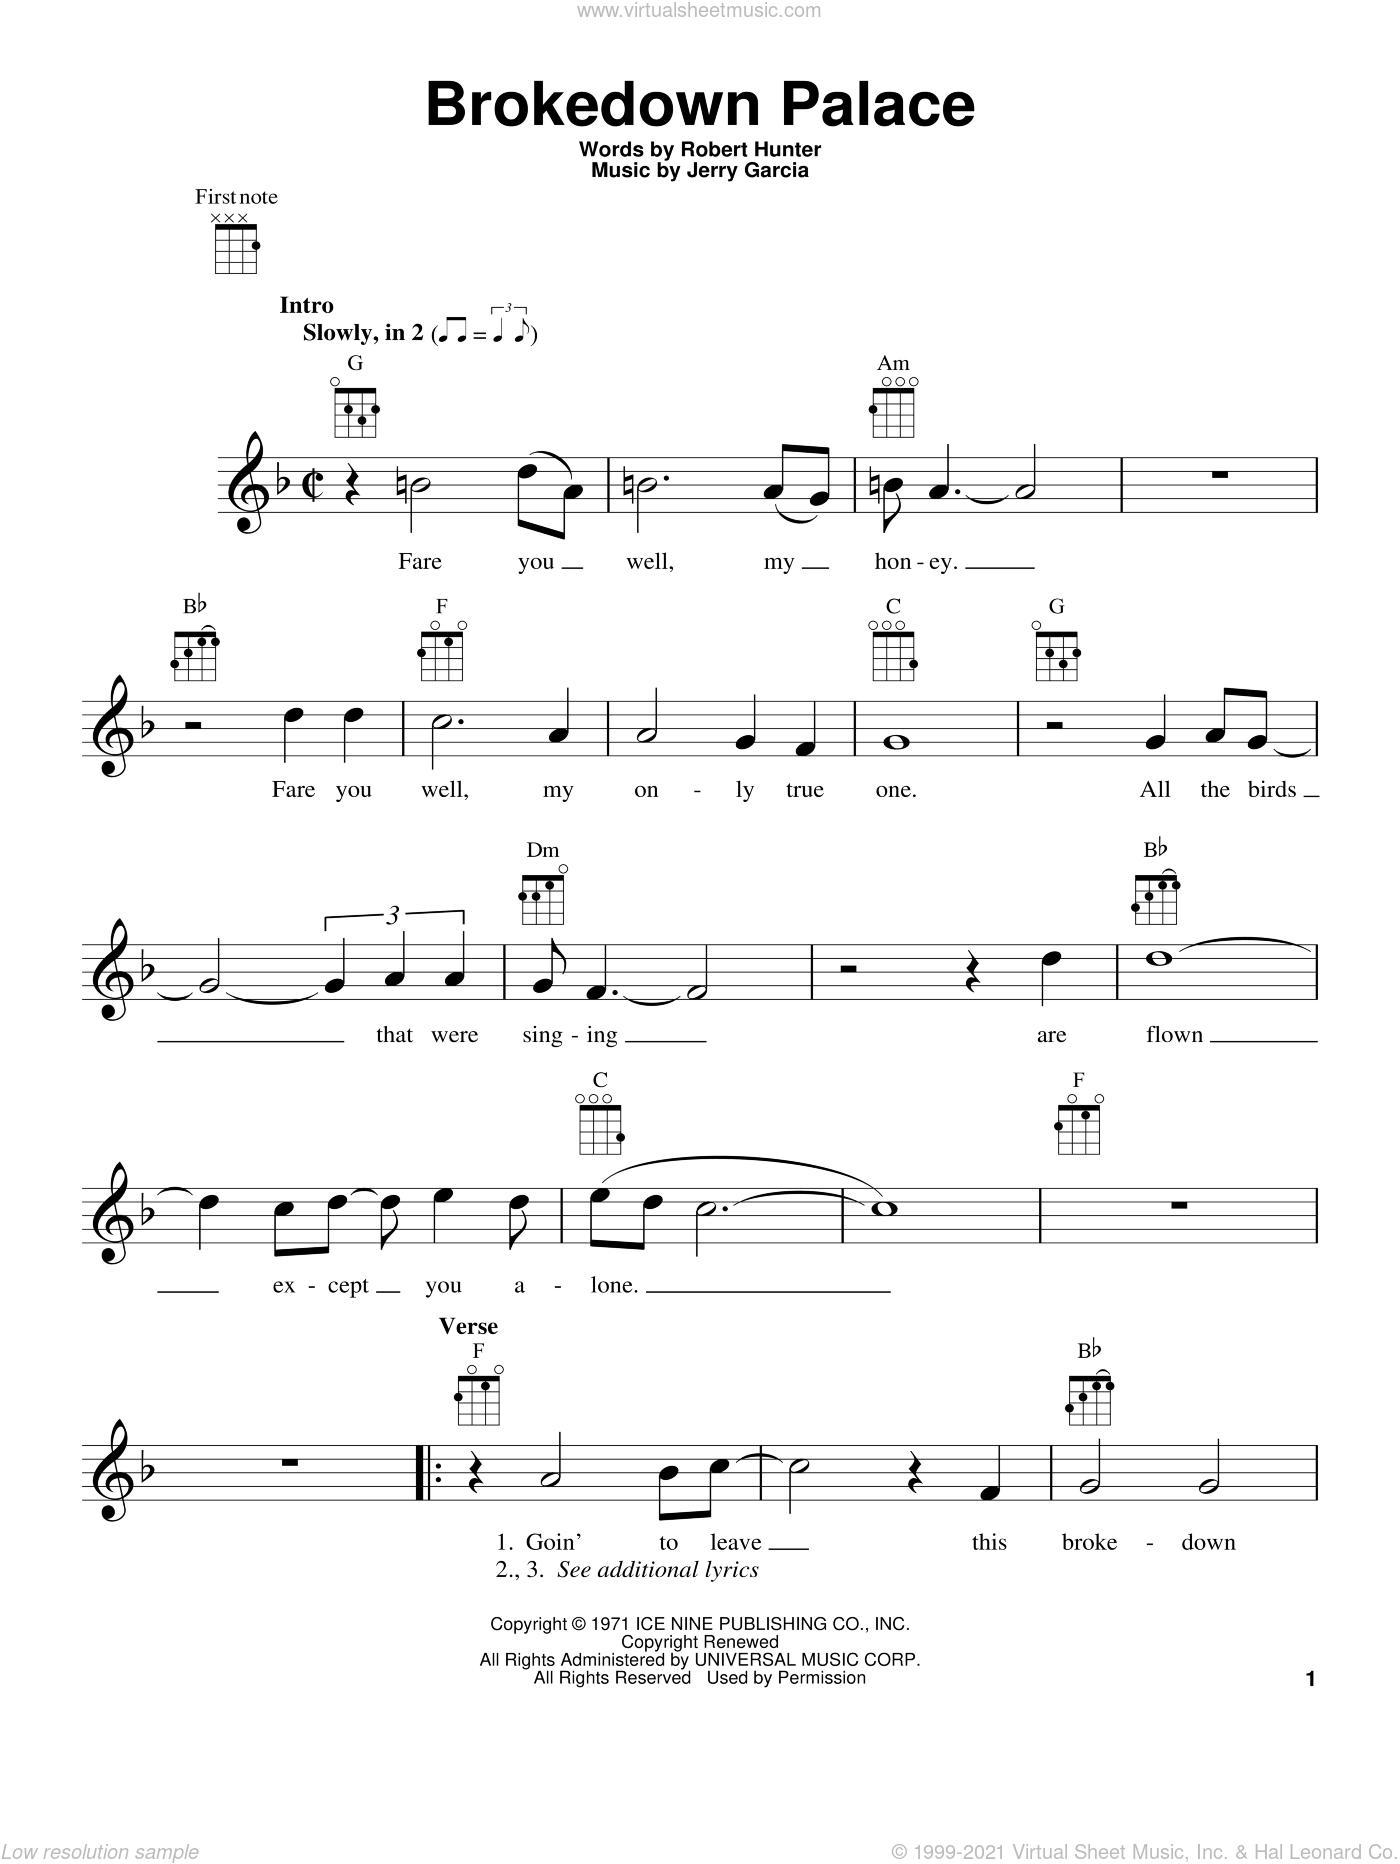 Brokedown Palace sheet music for ukulele by Grateful Dead, Jerry Garcia and Robert Hunter, intermediate skill level